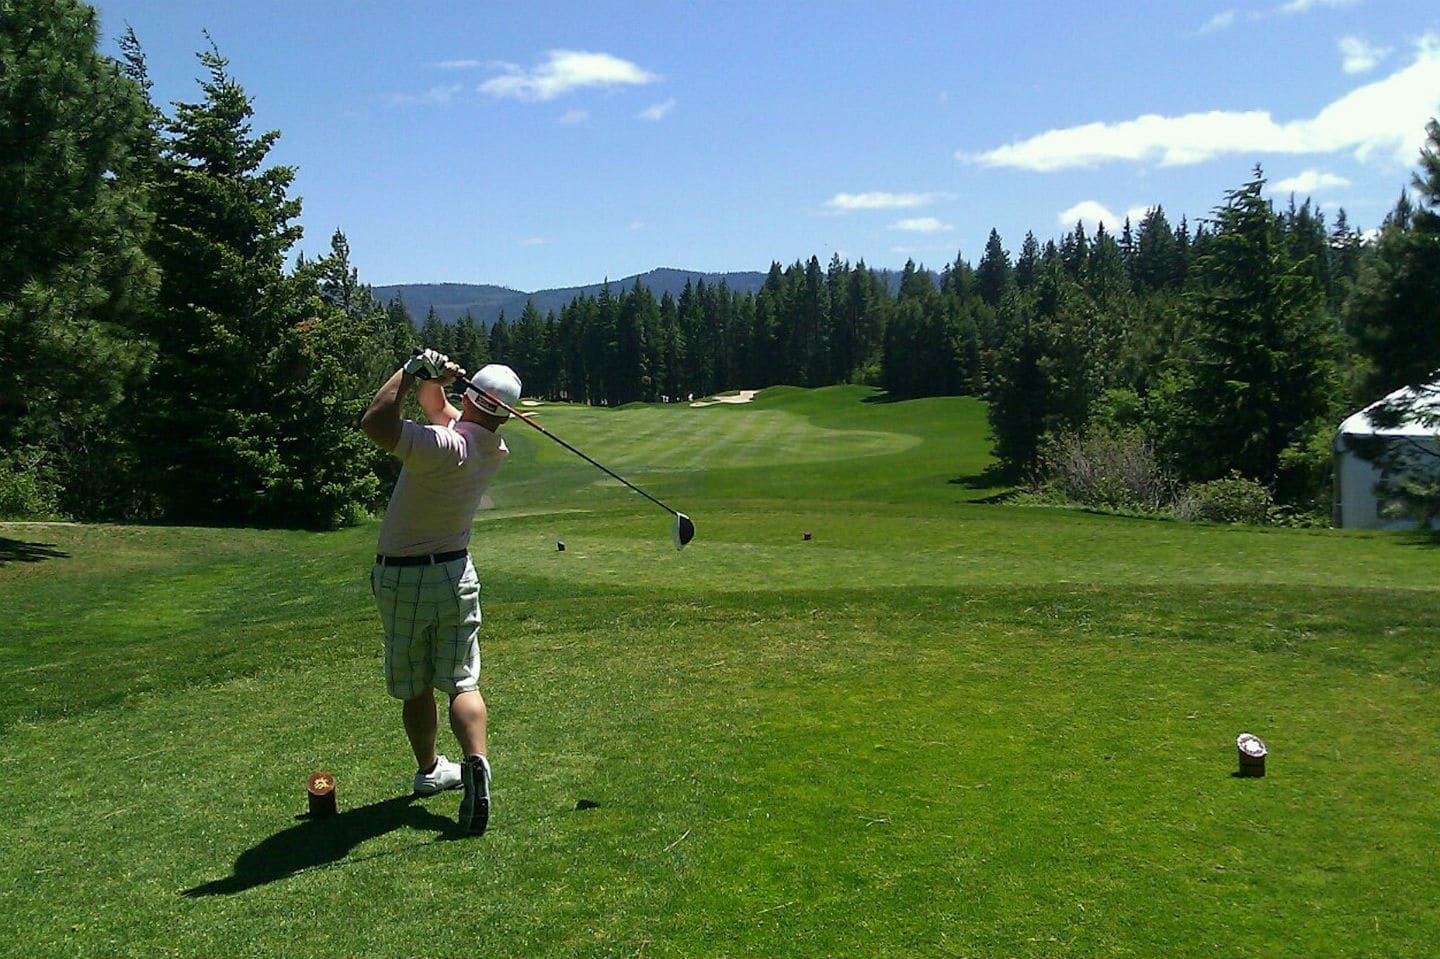 golfing on fathers day weekend in tahoe